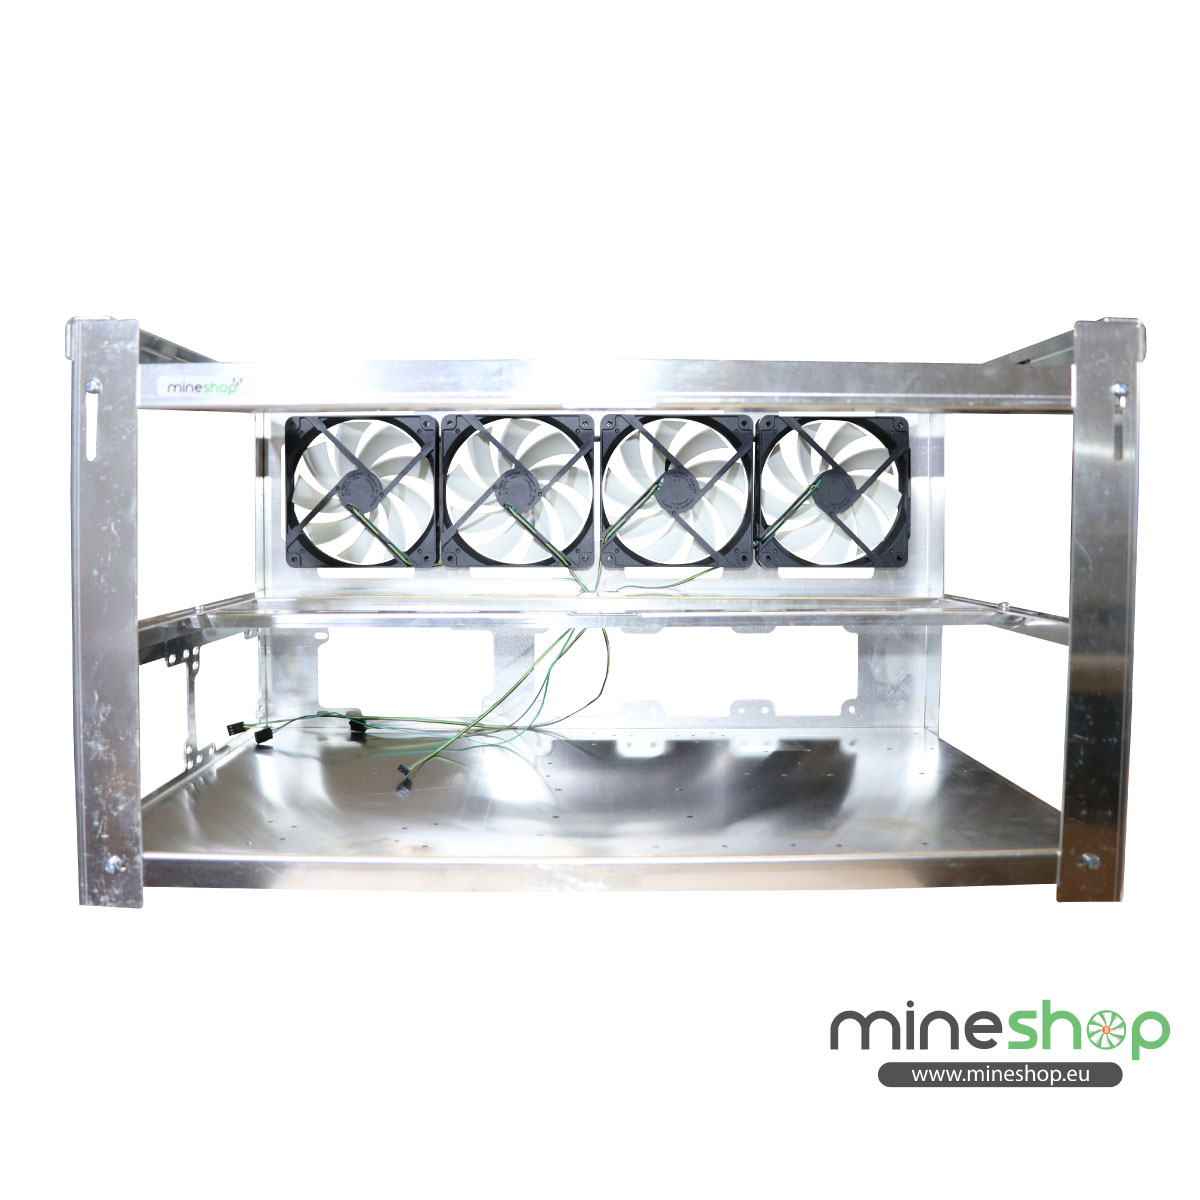 Mining Rig open air frame for 8xGPUs (NEW design) – Mineshop